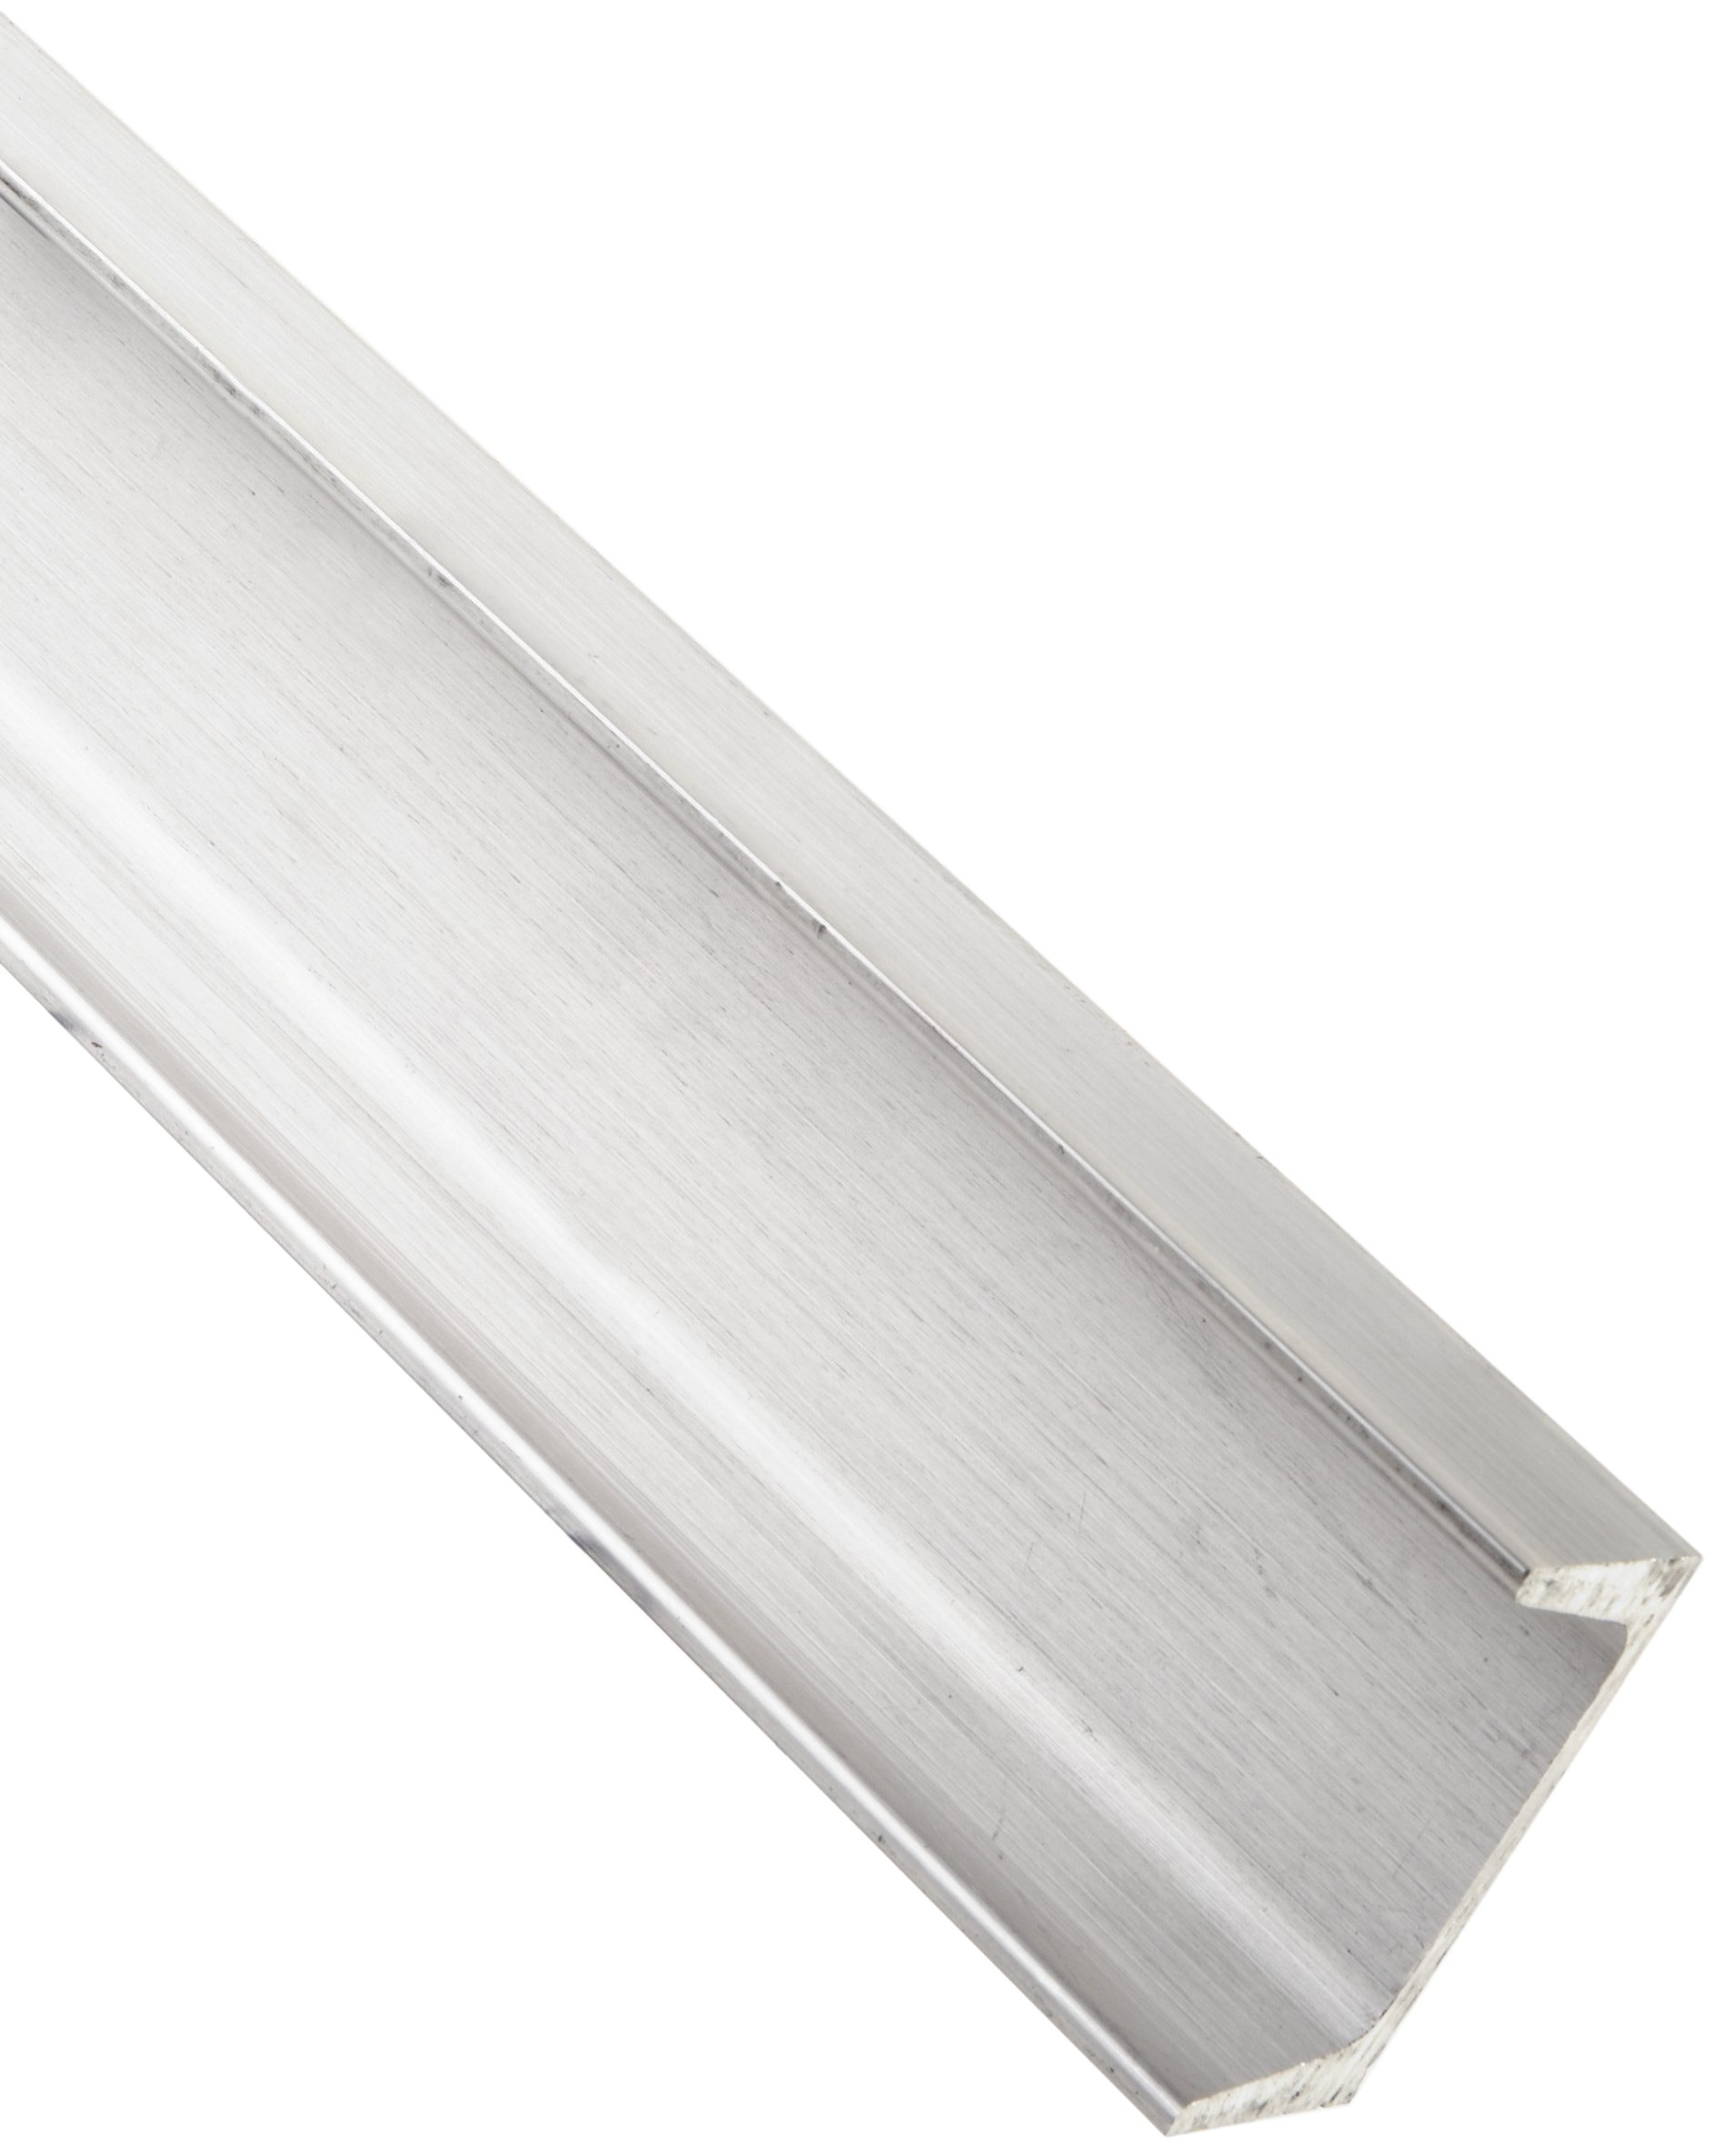 """6061 Aluminum U-Channel, Unpolished (Mill) Finish, Extruded, T6 Temper, AMS QQ-A-200/ASTM B221, Equal Leg Length, Rounded Corners, 0.15"""" Wall Thickness, 12"""" Length"""